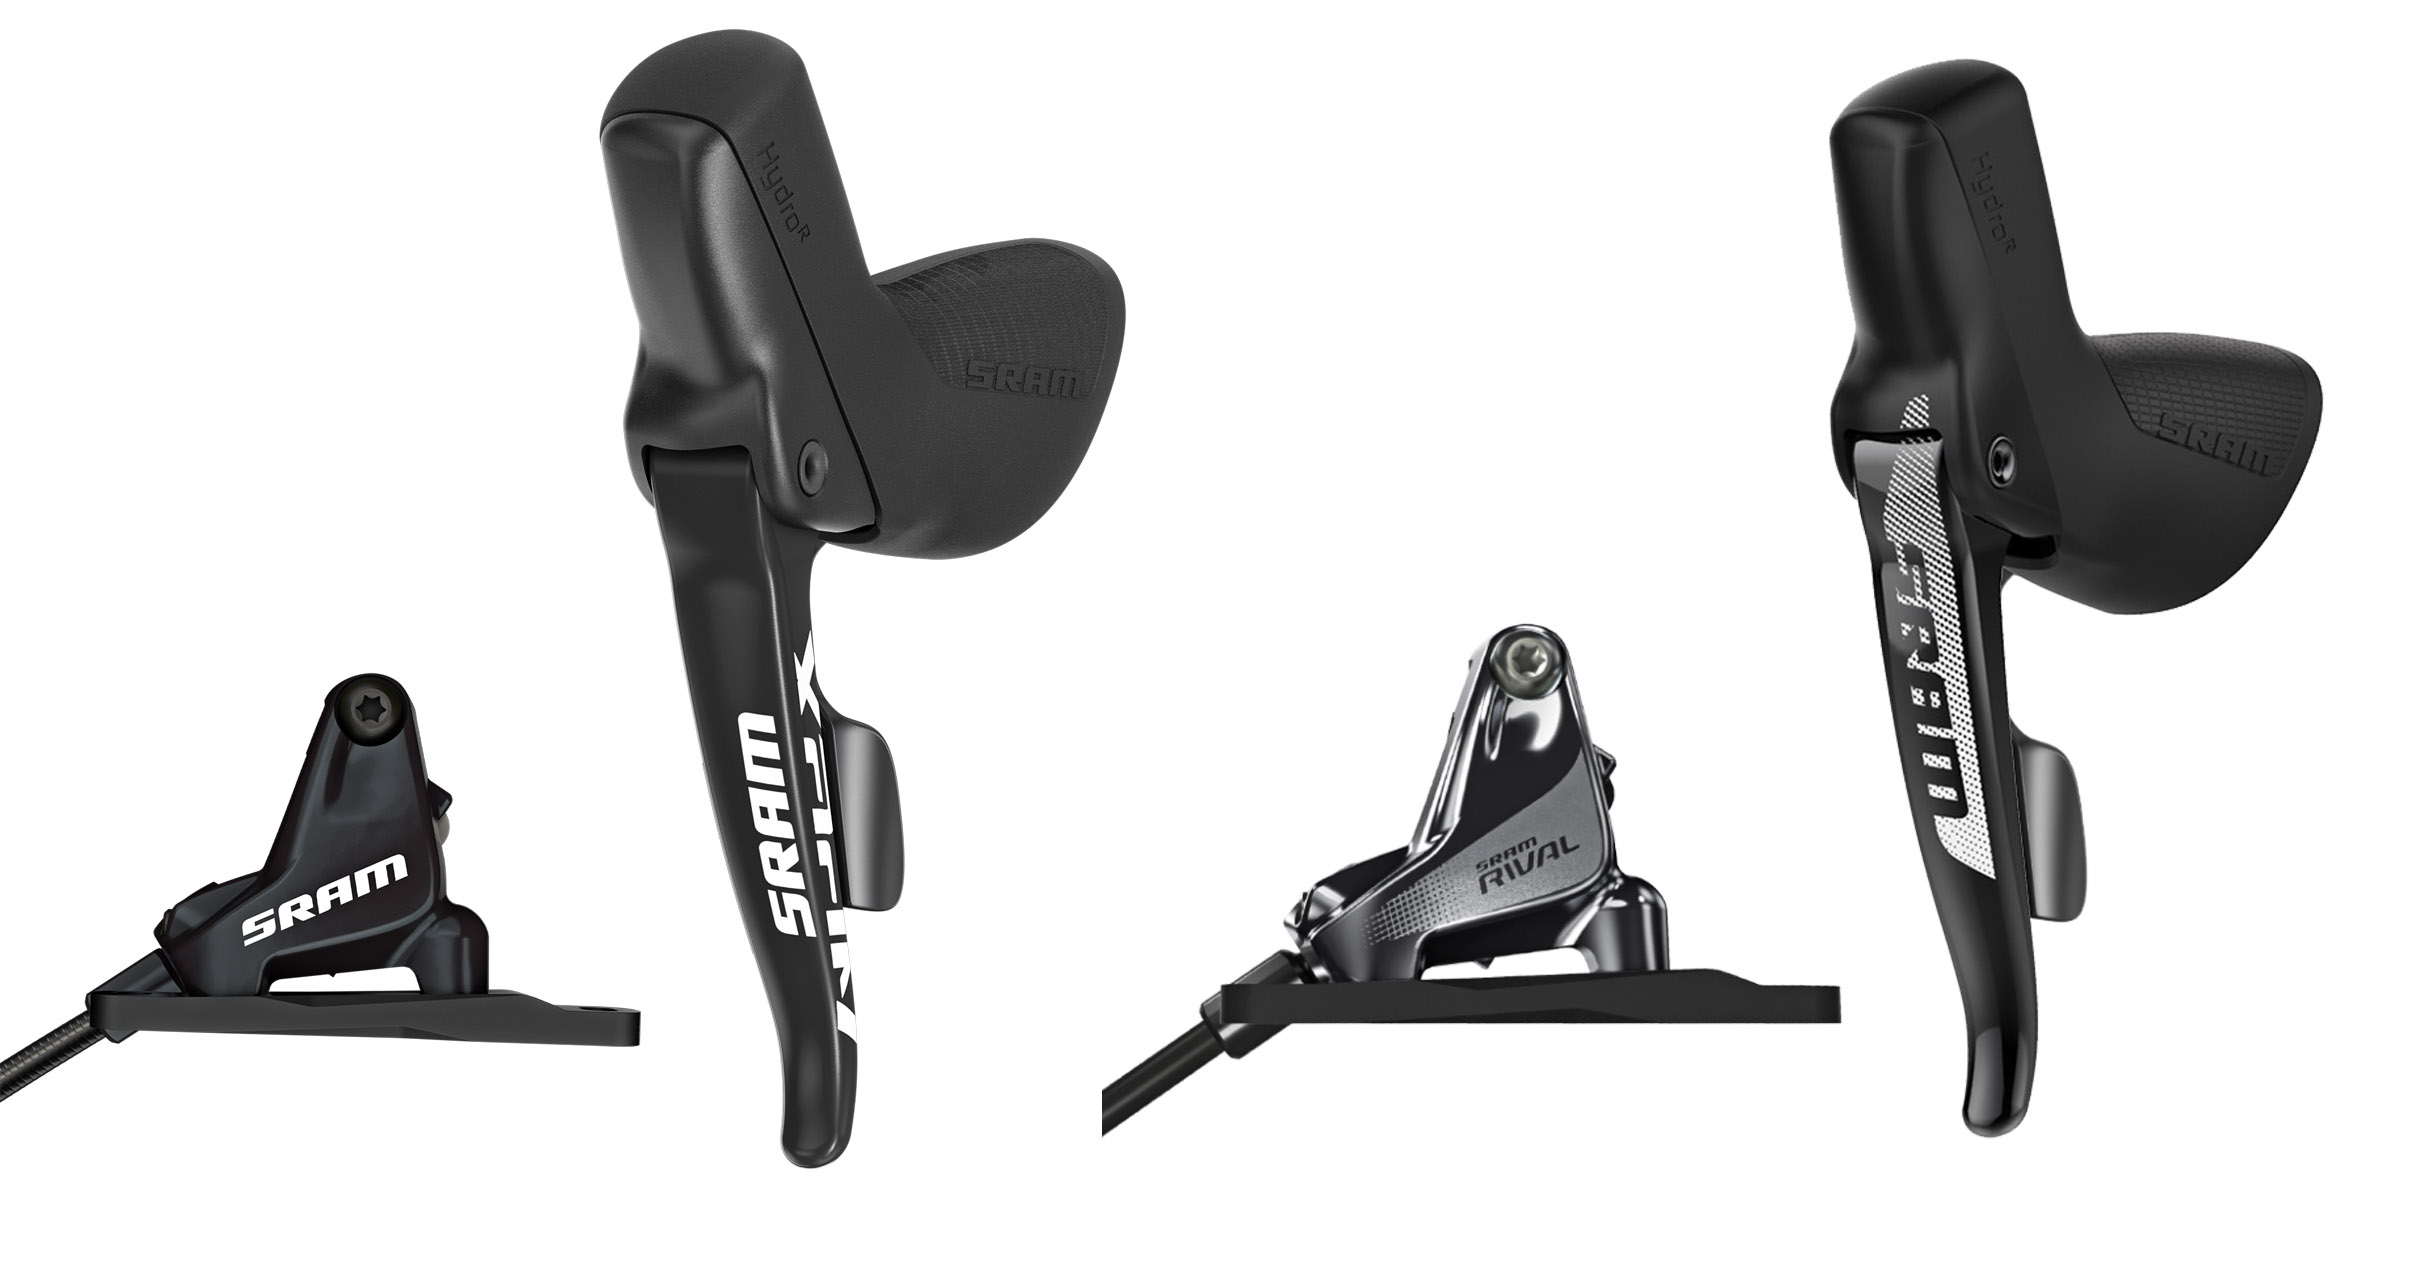 SRAM introduces new Paceline brake rotor for road + HRD levers w/ dropper post remote